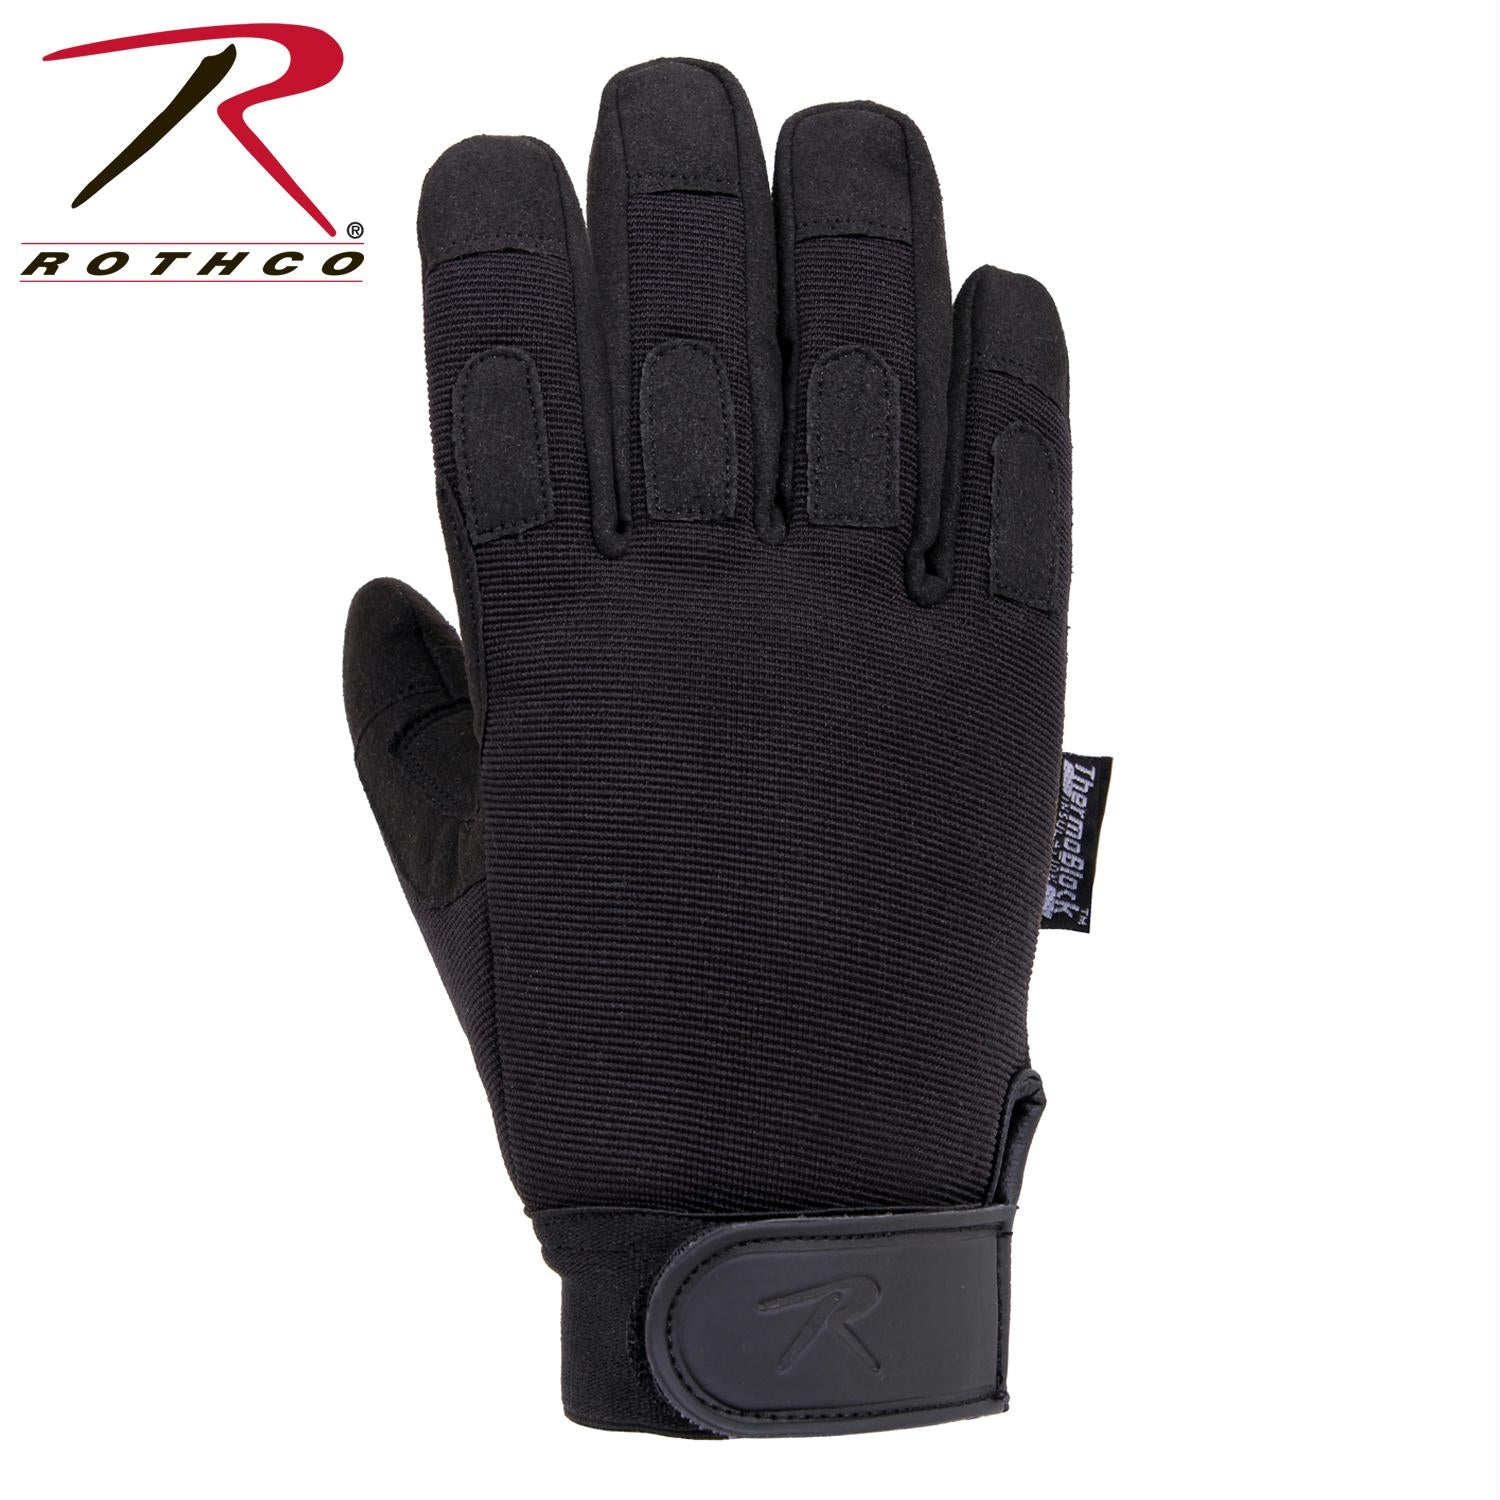 Rothco Cold Weather All Purpose Duty Gloves - L